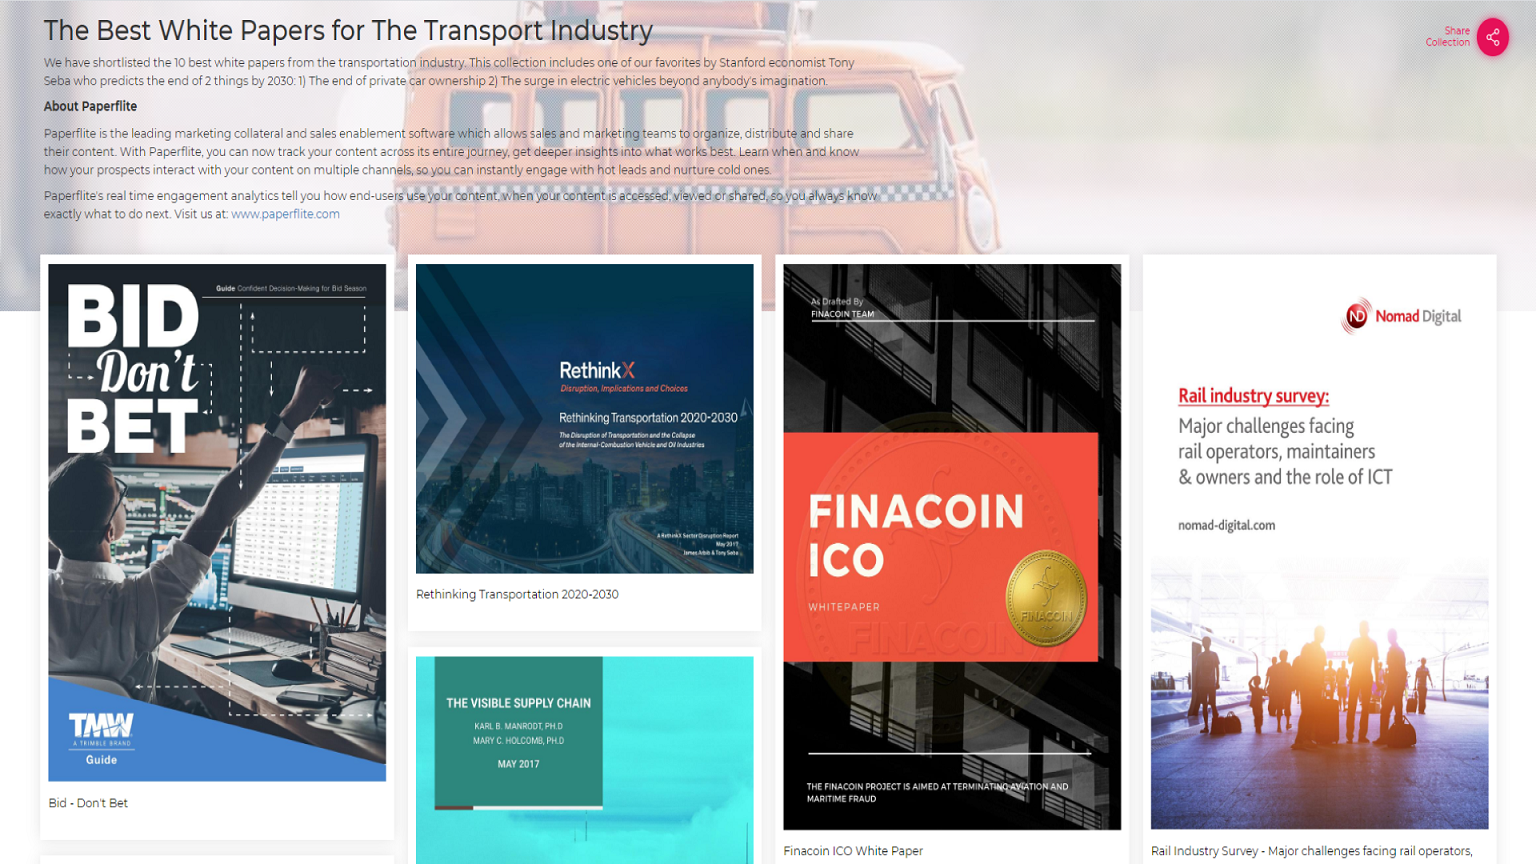 The Best White Papers for the Transport Industry